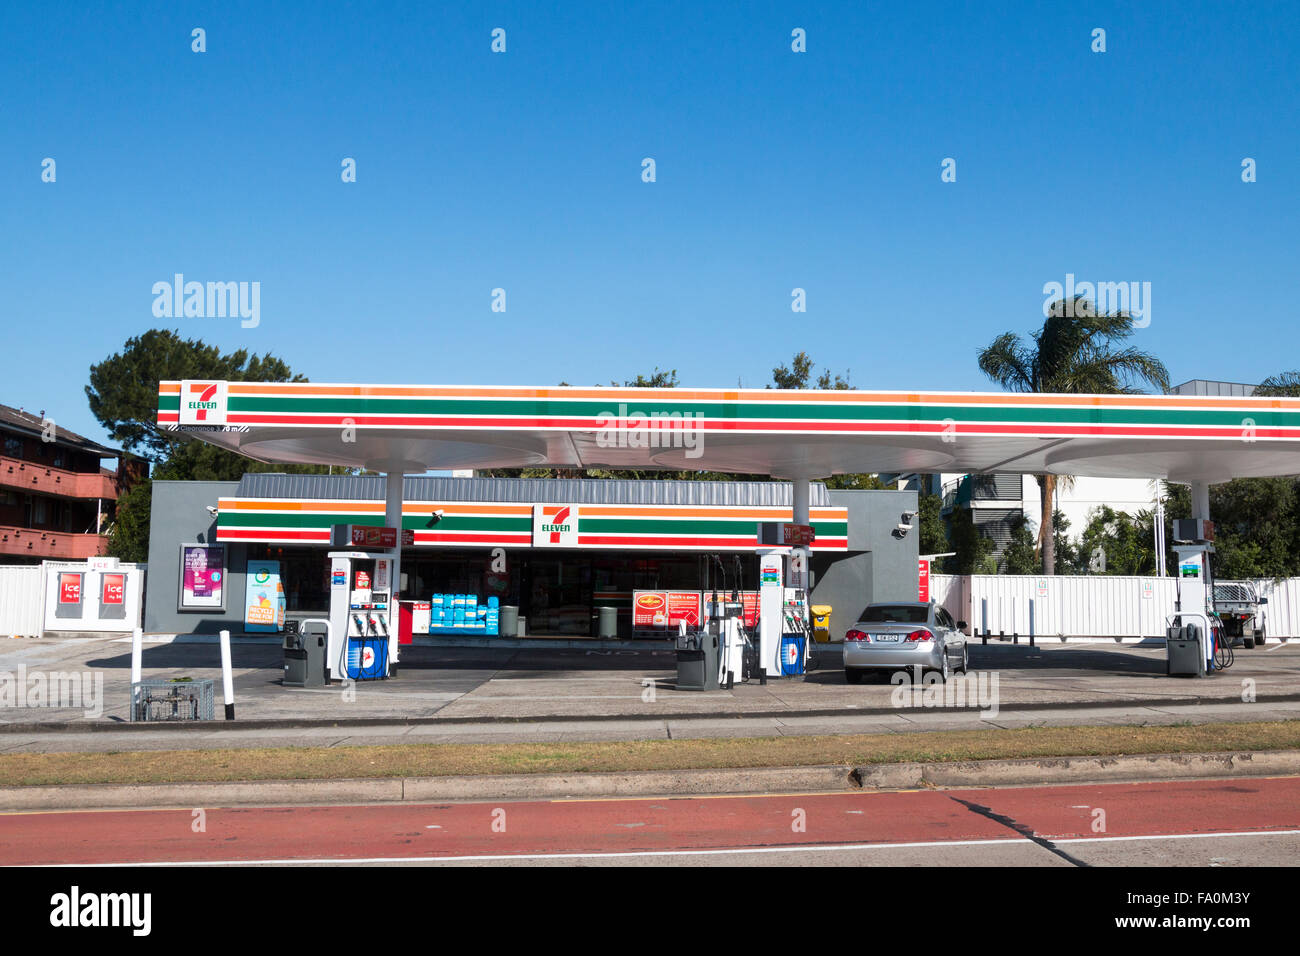 7 Eleven Petrol Fuel Gas Station In Dee Why Suburb Of Sydney On The Stock Photo